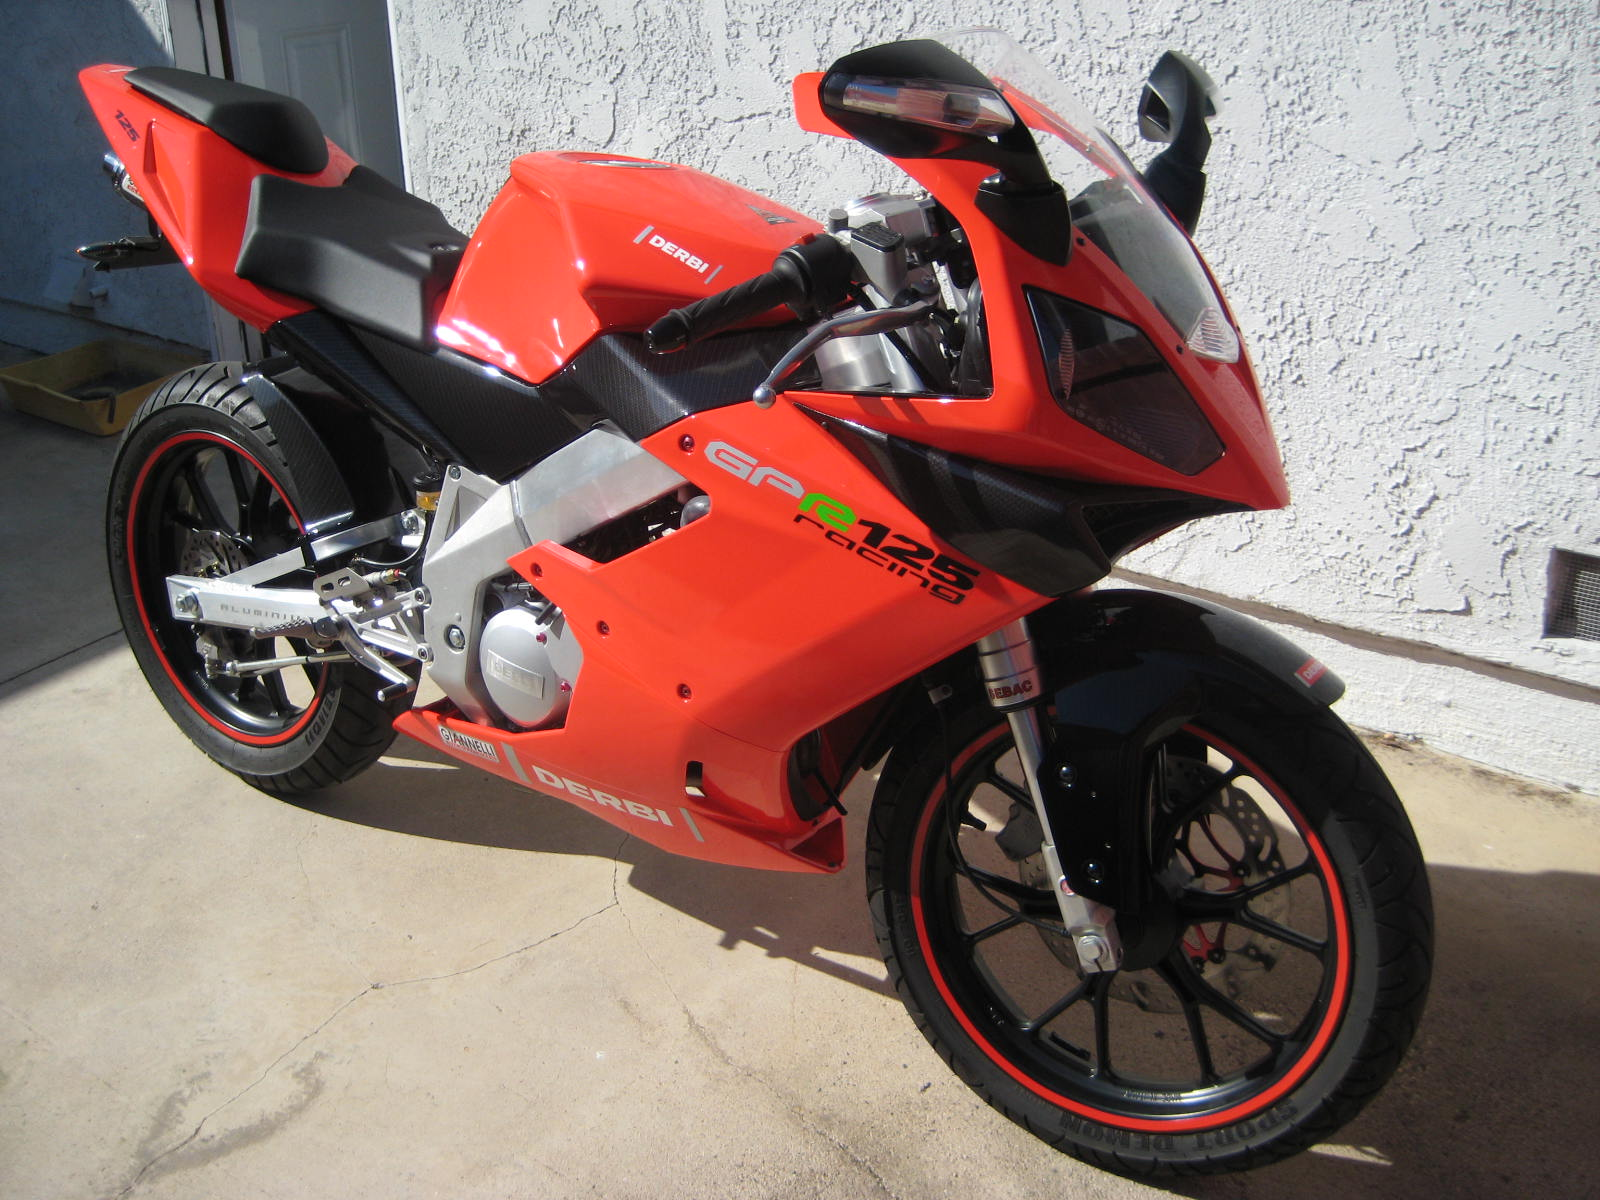 Derbi gpr 125 for sale